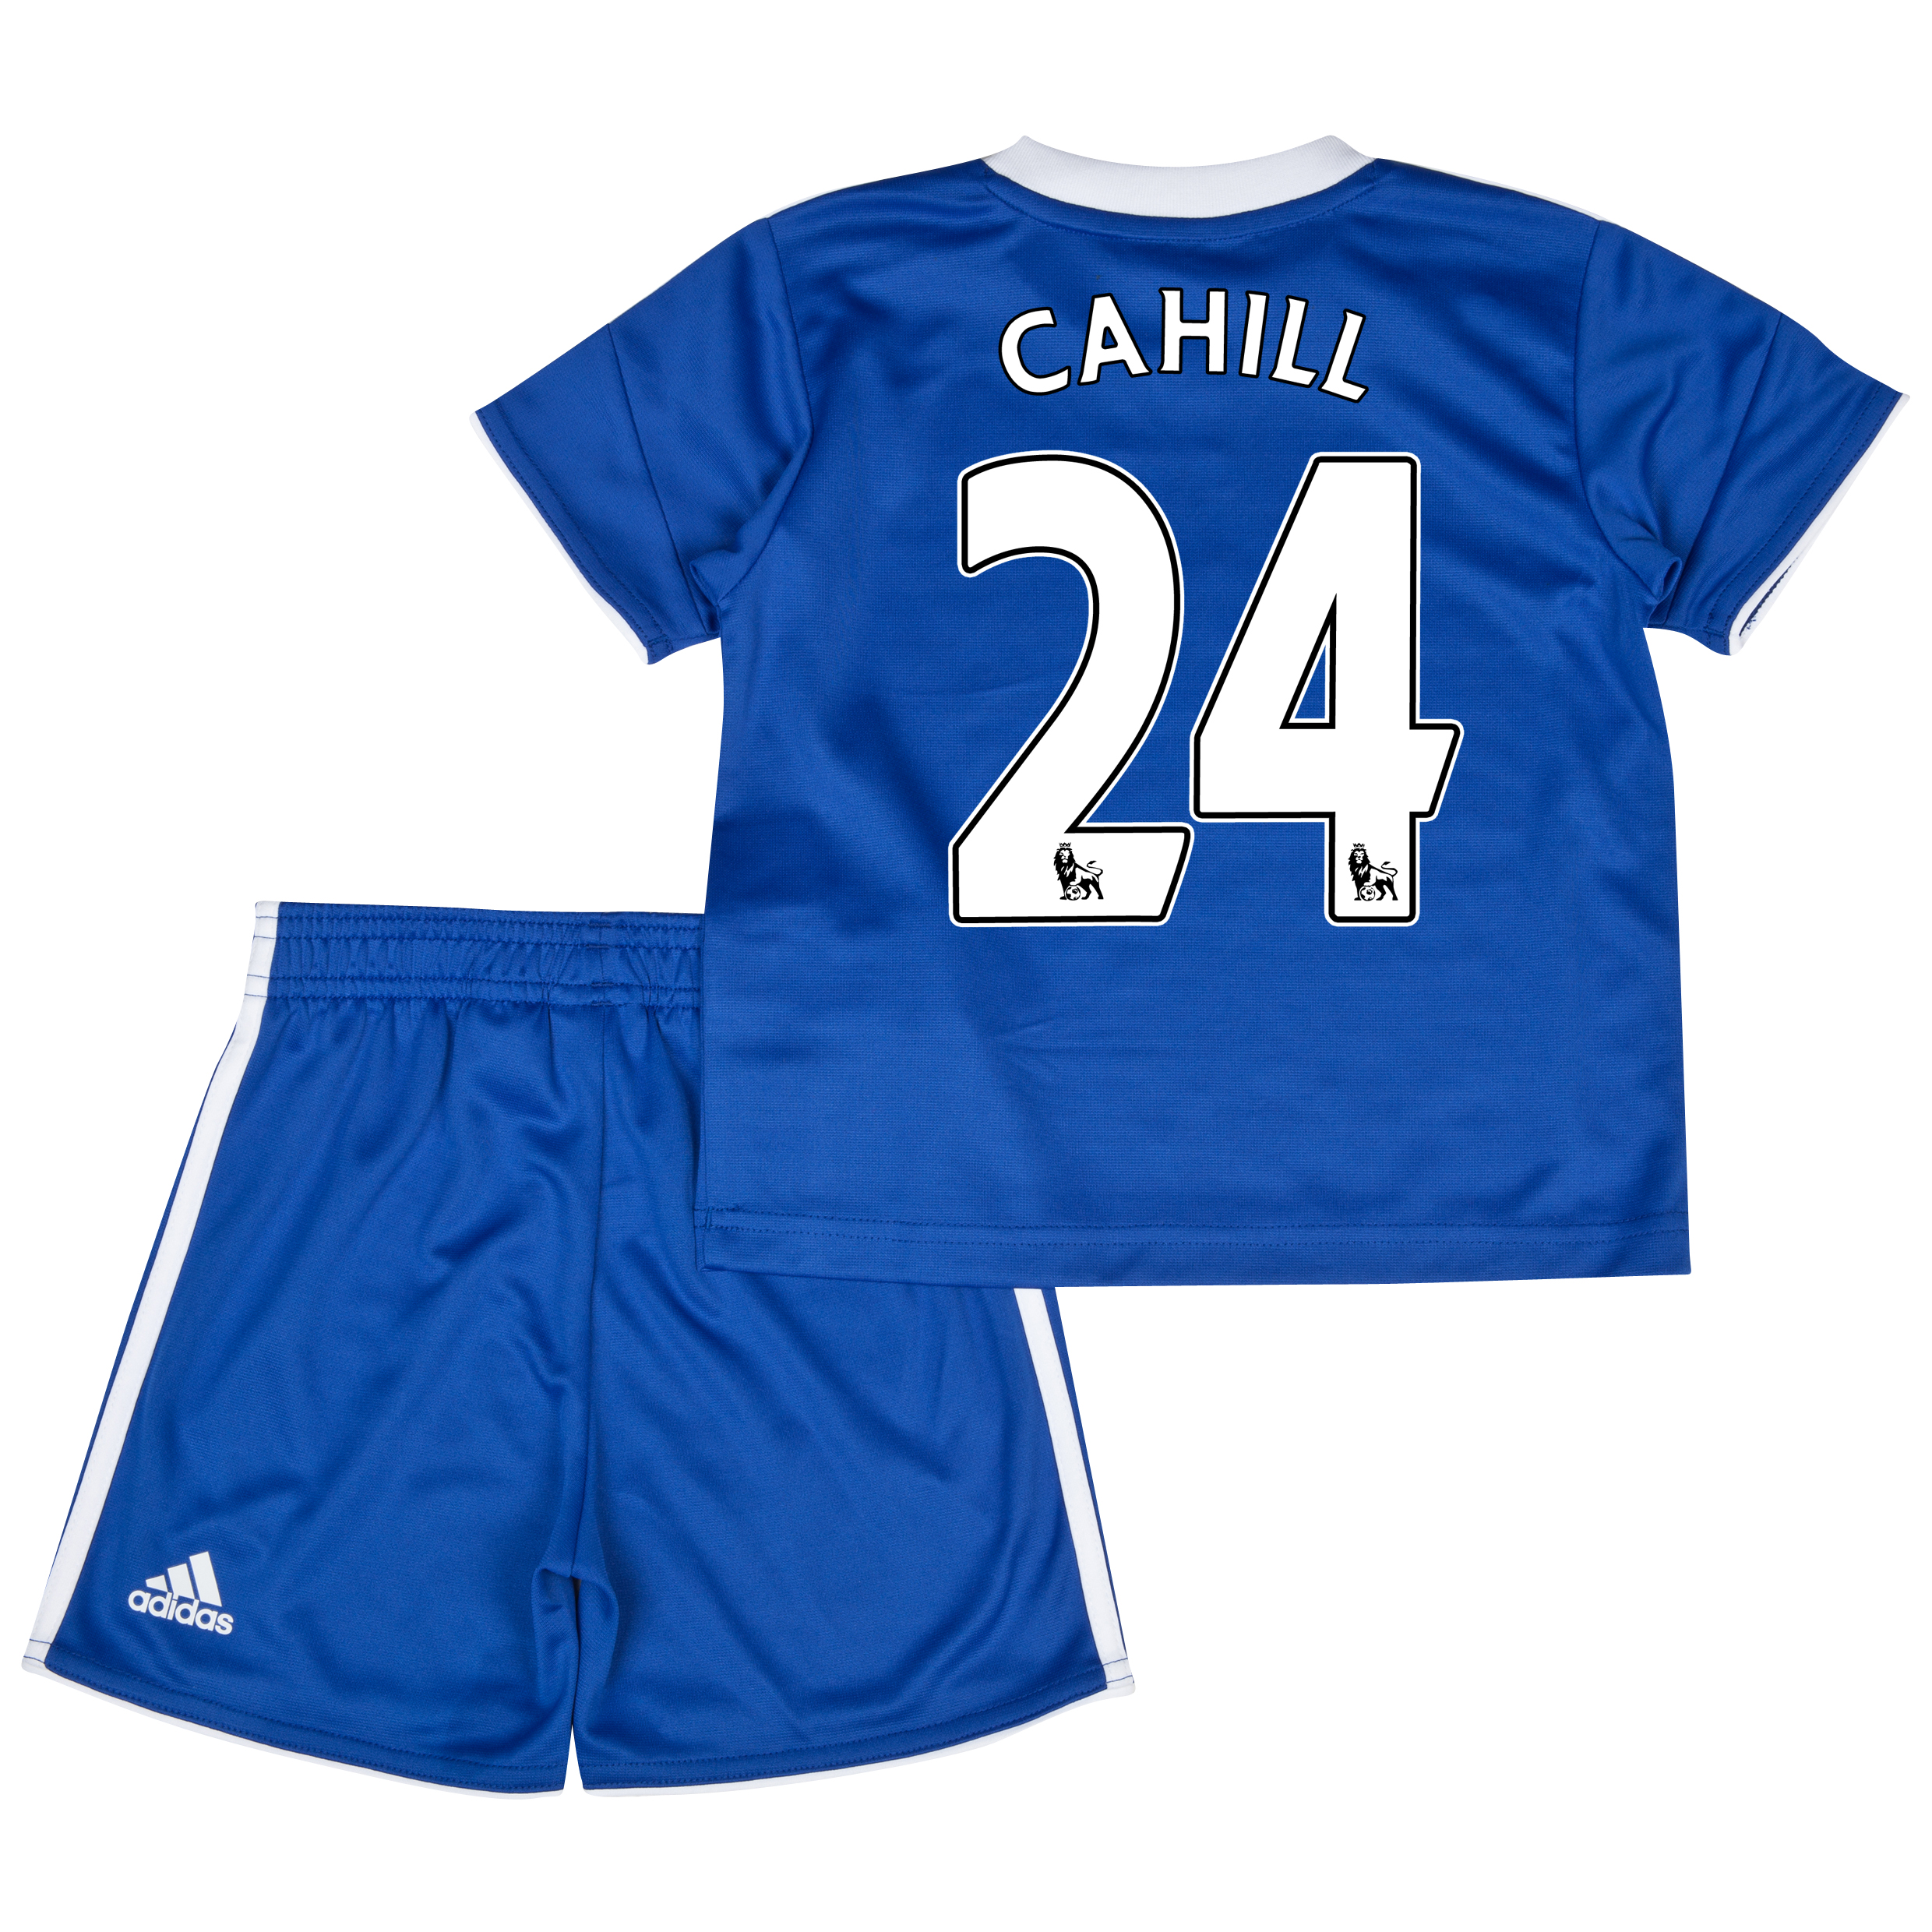 Chelsea Home Mini Kit 2013/14 with Cahill 24 printing